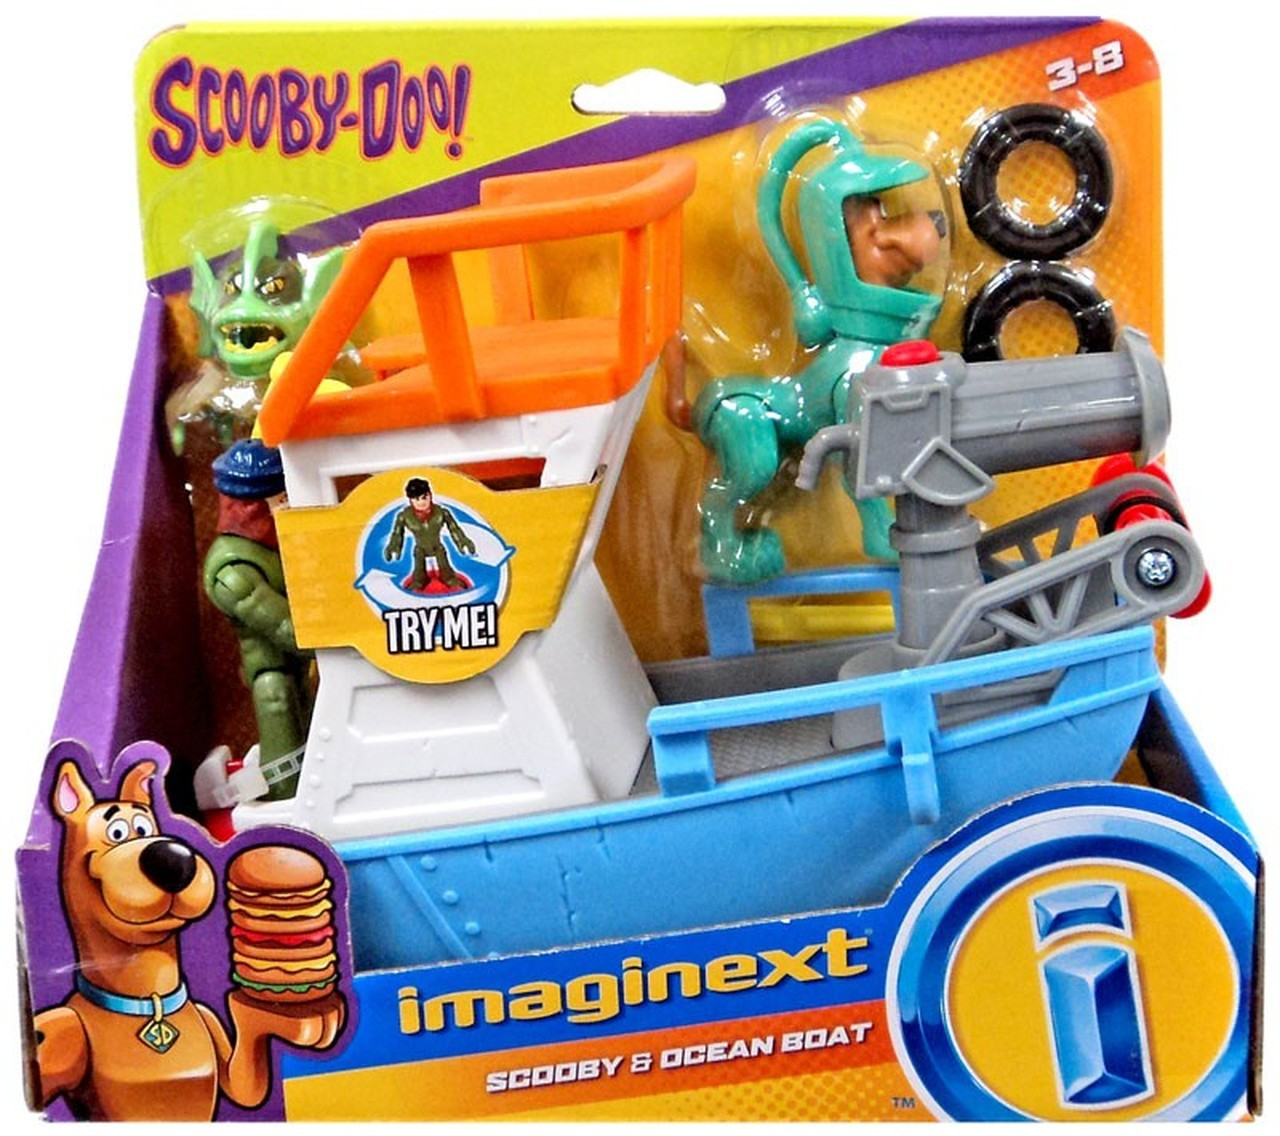 Assorted Imaginext Toys